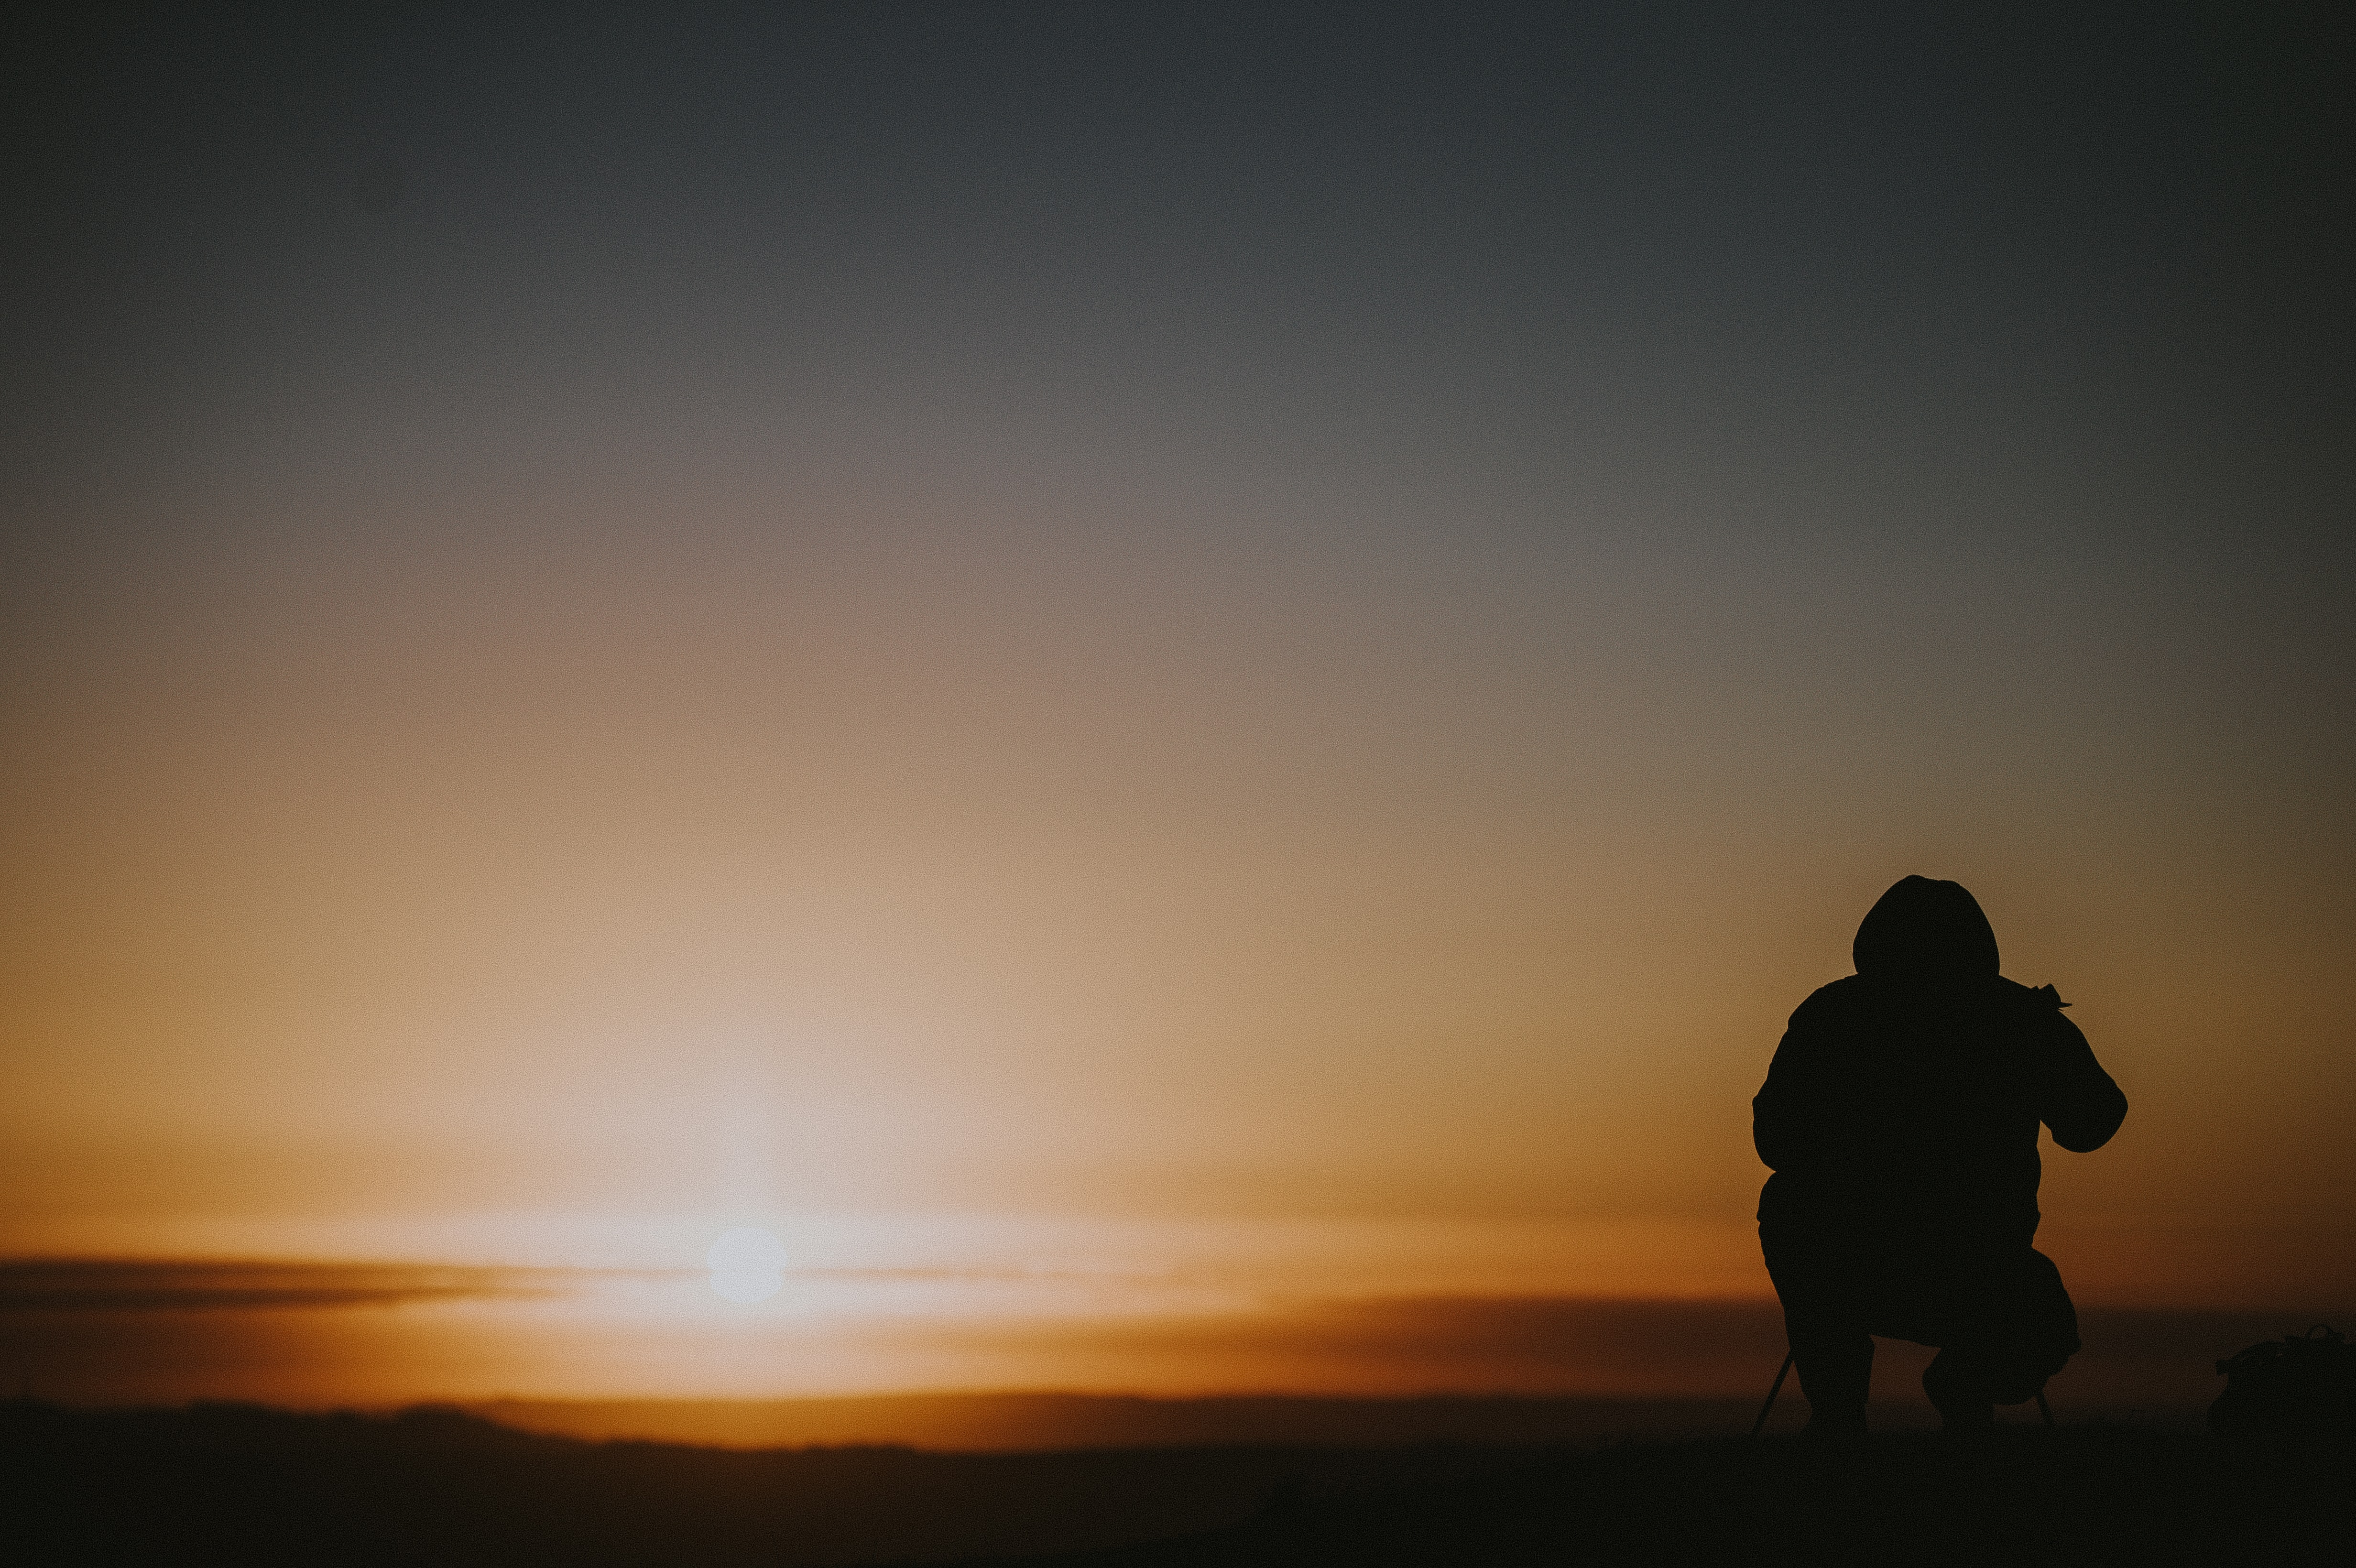 silhouette photo of person sitting under golden hour